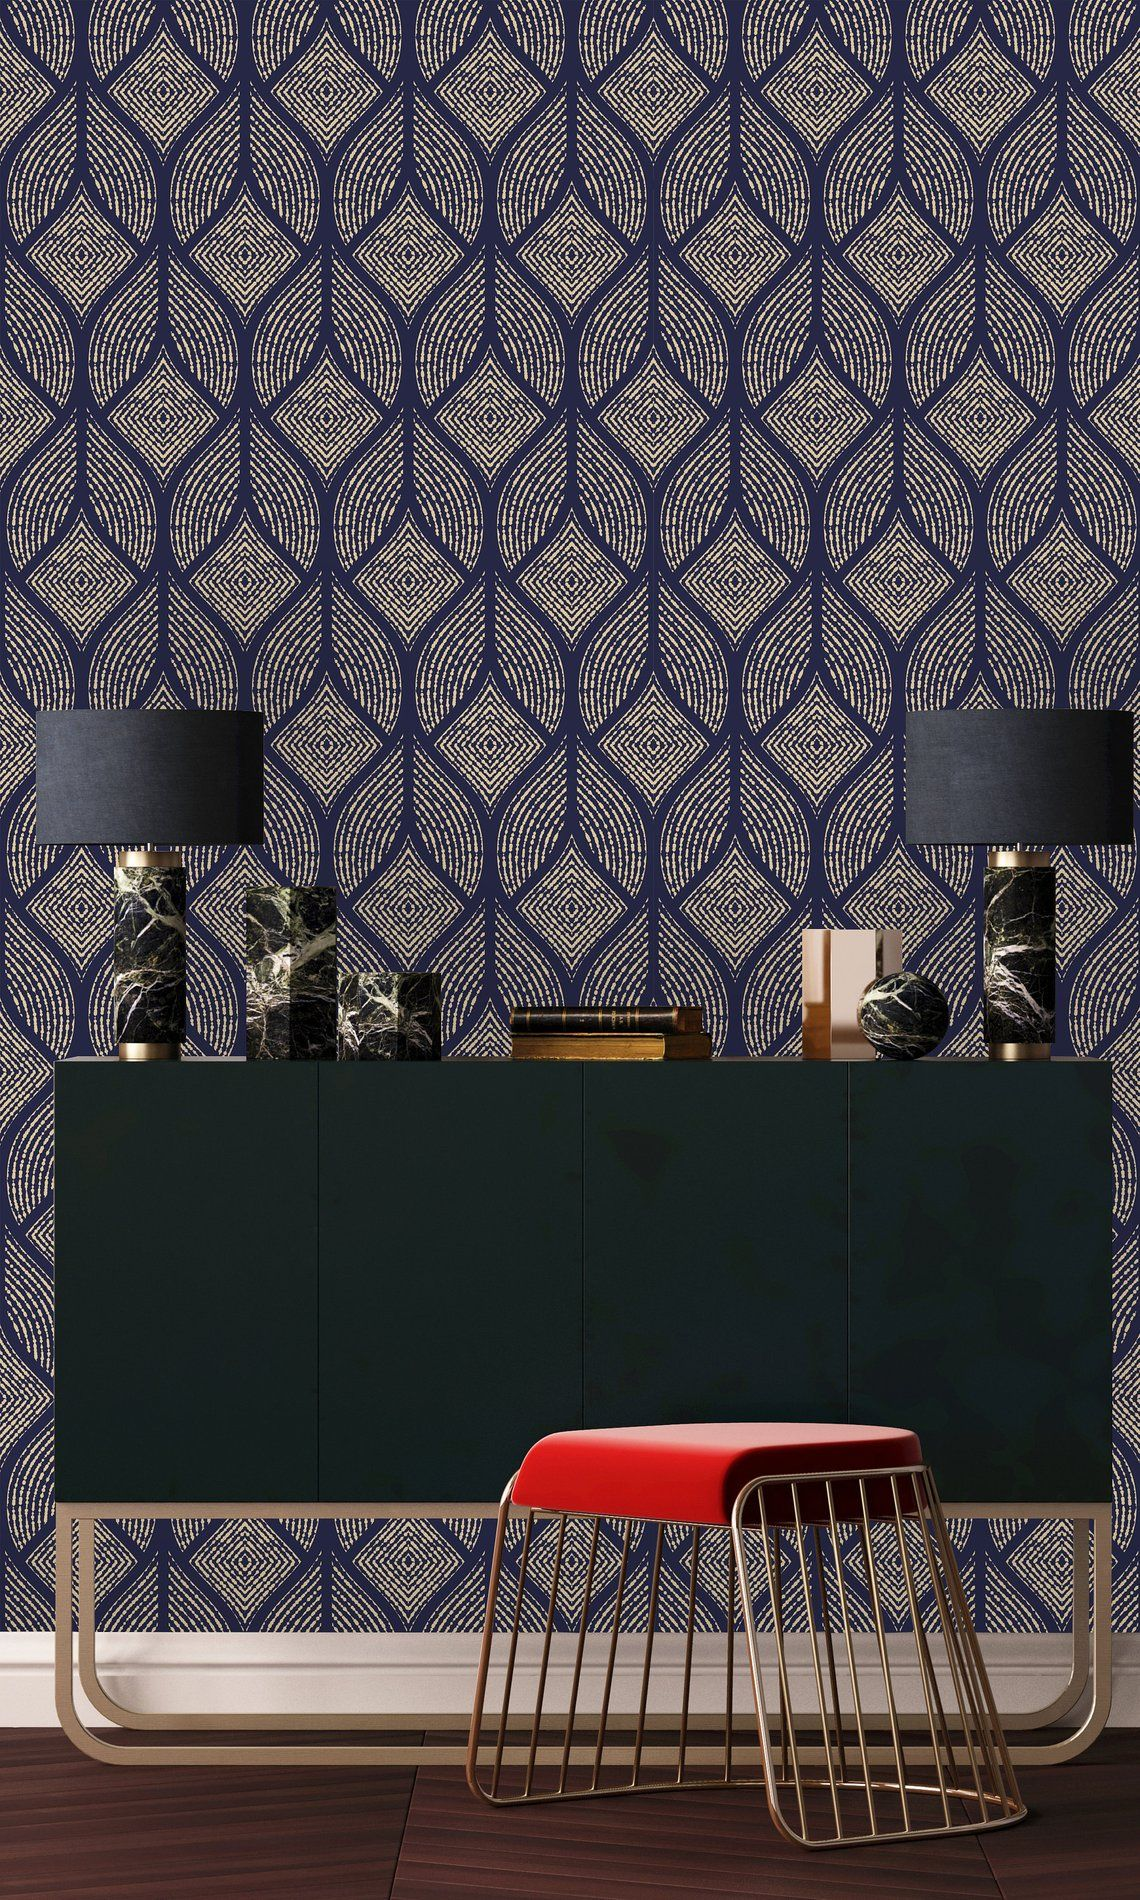 Removable Wallpaper Peel And Stick Wallpaper Self Adhesive Etsy In 2020 Peel And Stick Wallpaper Removable Wallpaper Home